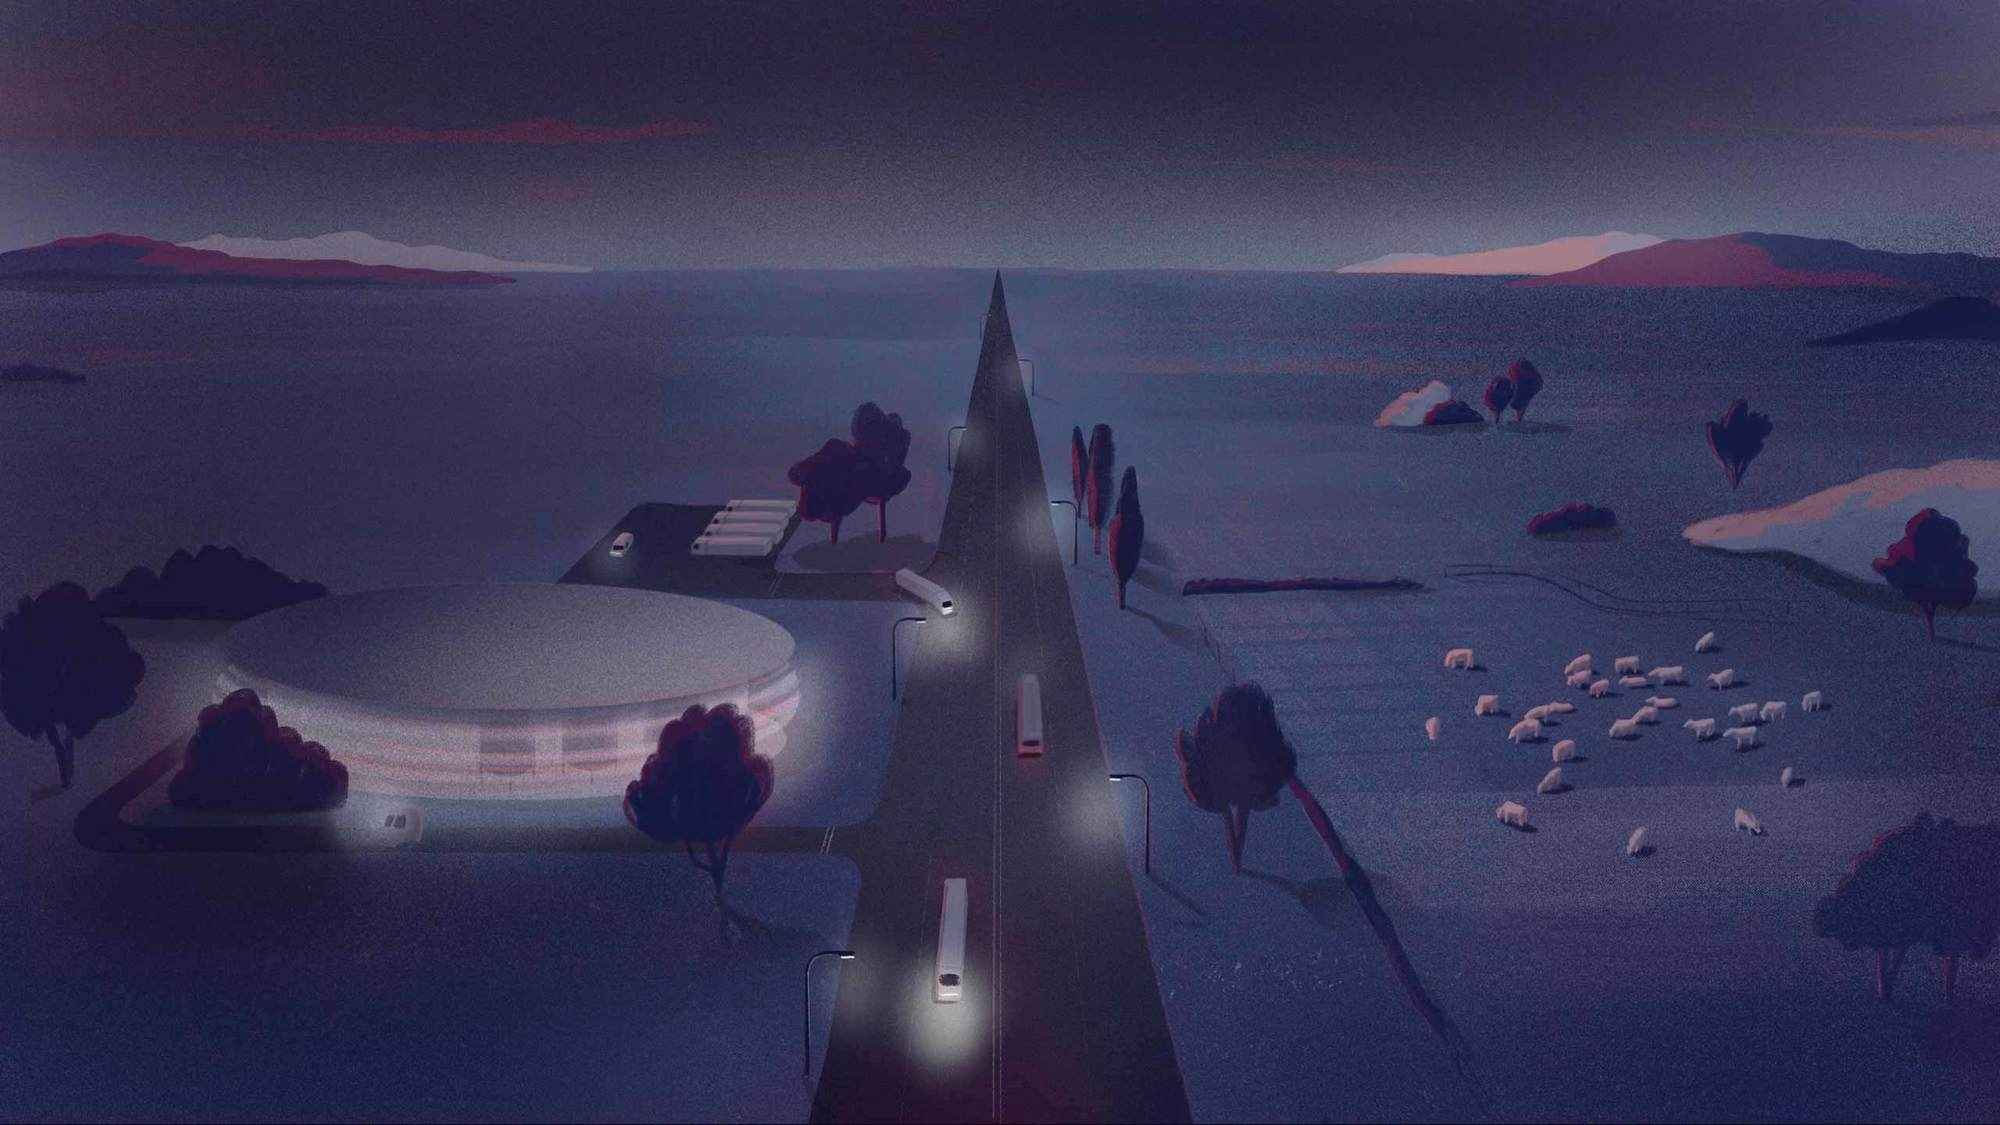 A view looking down on a road dividing a round cultured meat facility on the left and cows graze. Dark blues and red fill the sky. September 2021